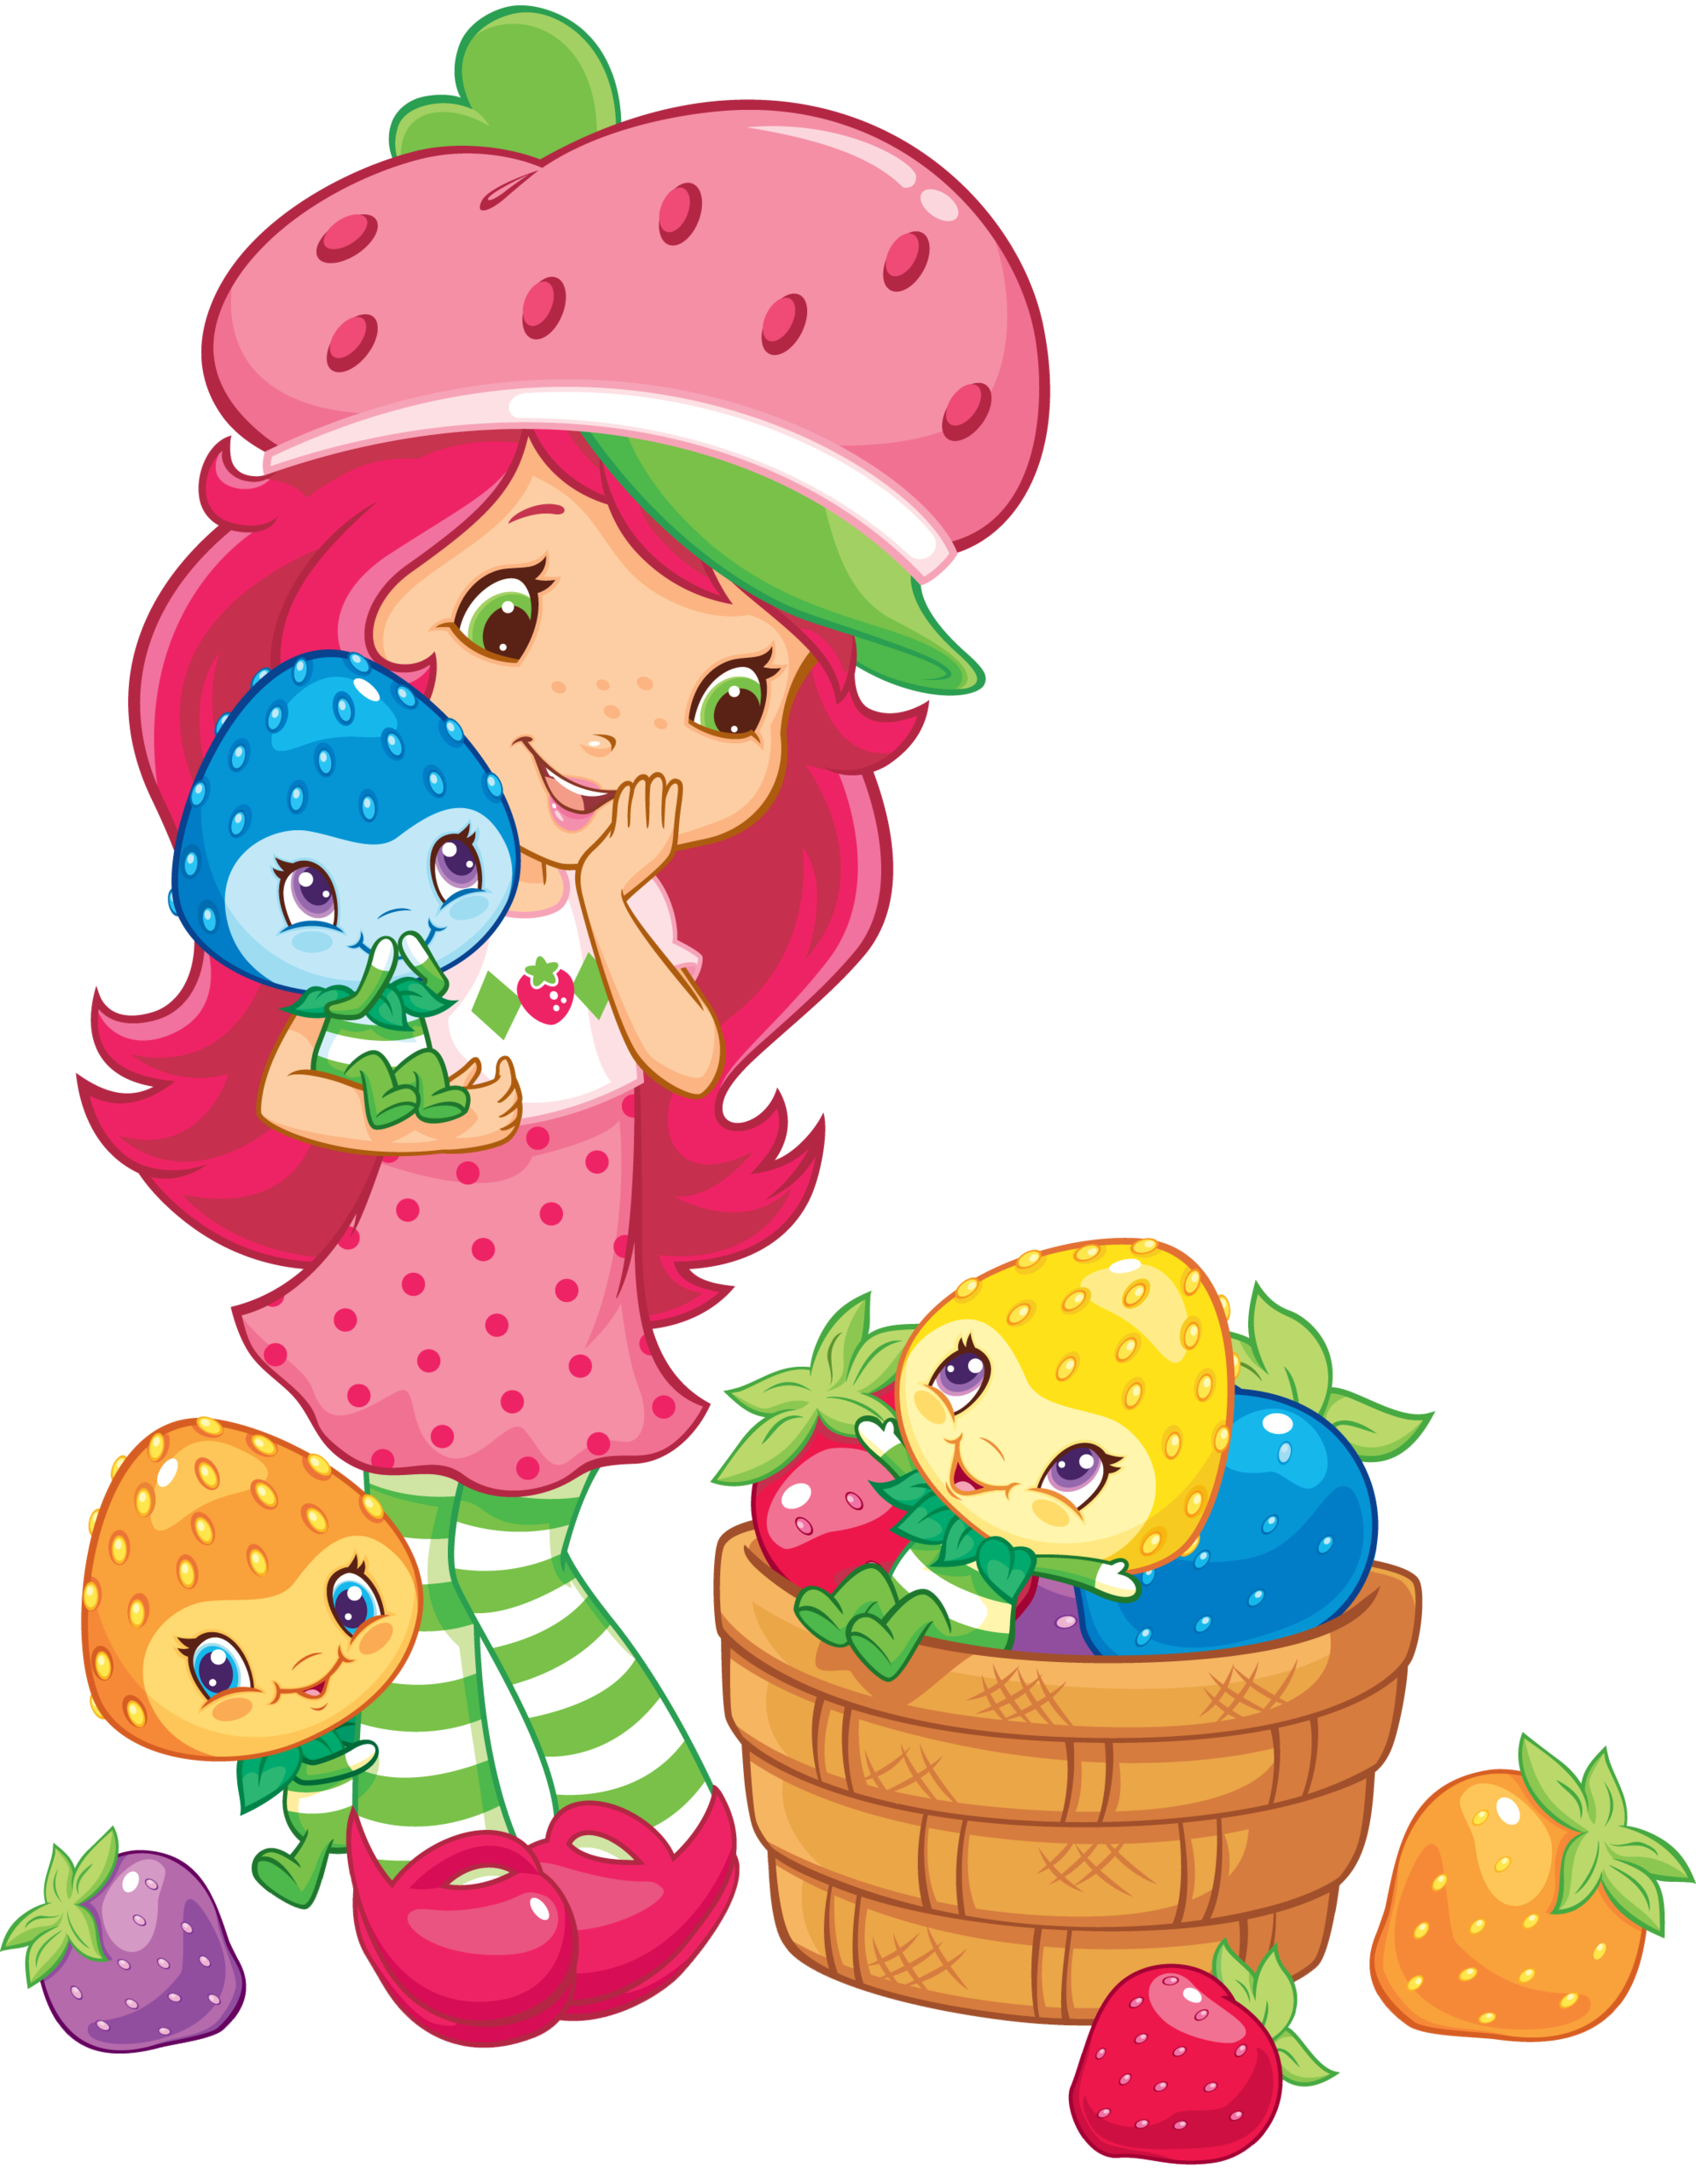 new strawberry - Strawberry Shortcake Photo (21991513 ...